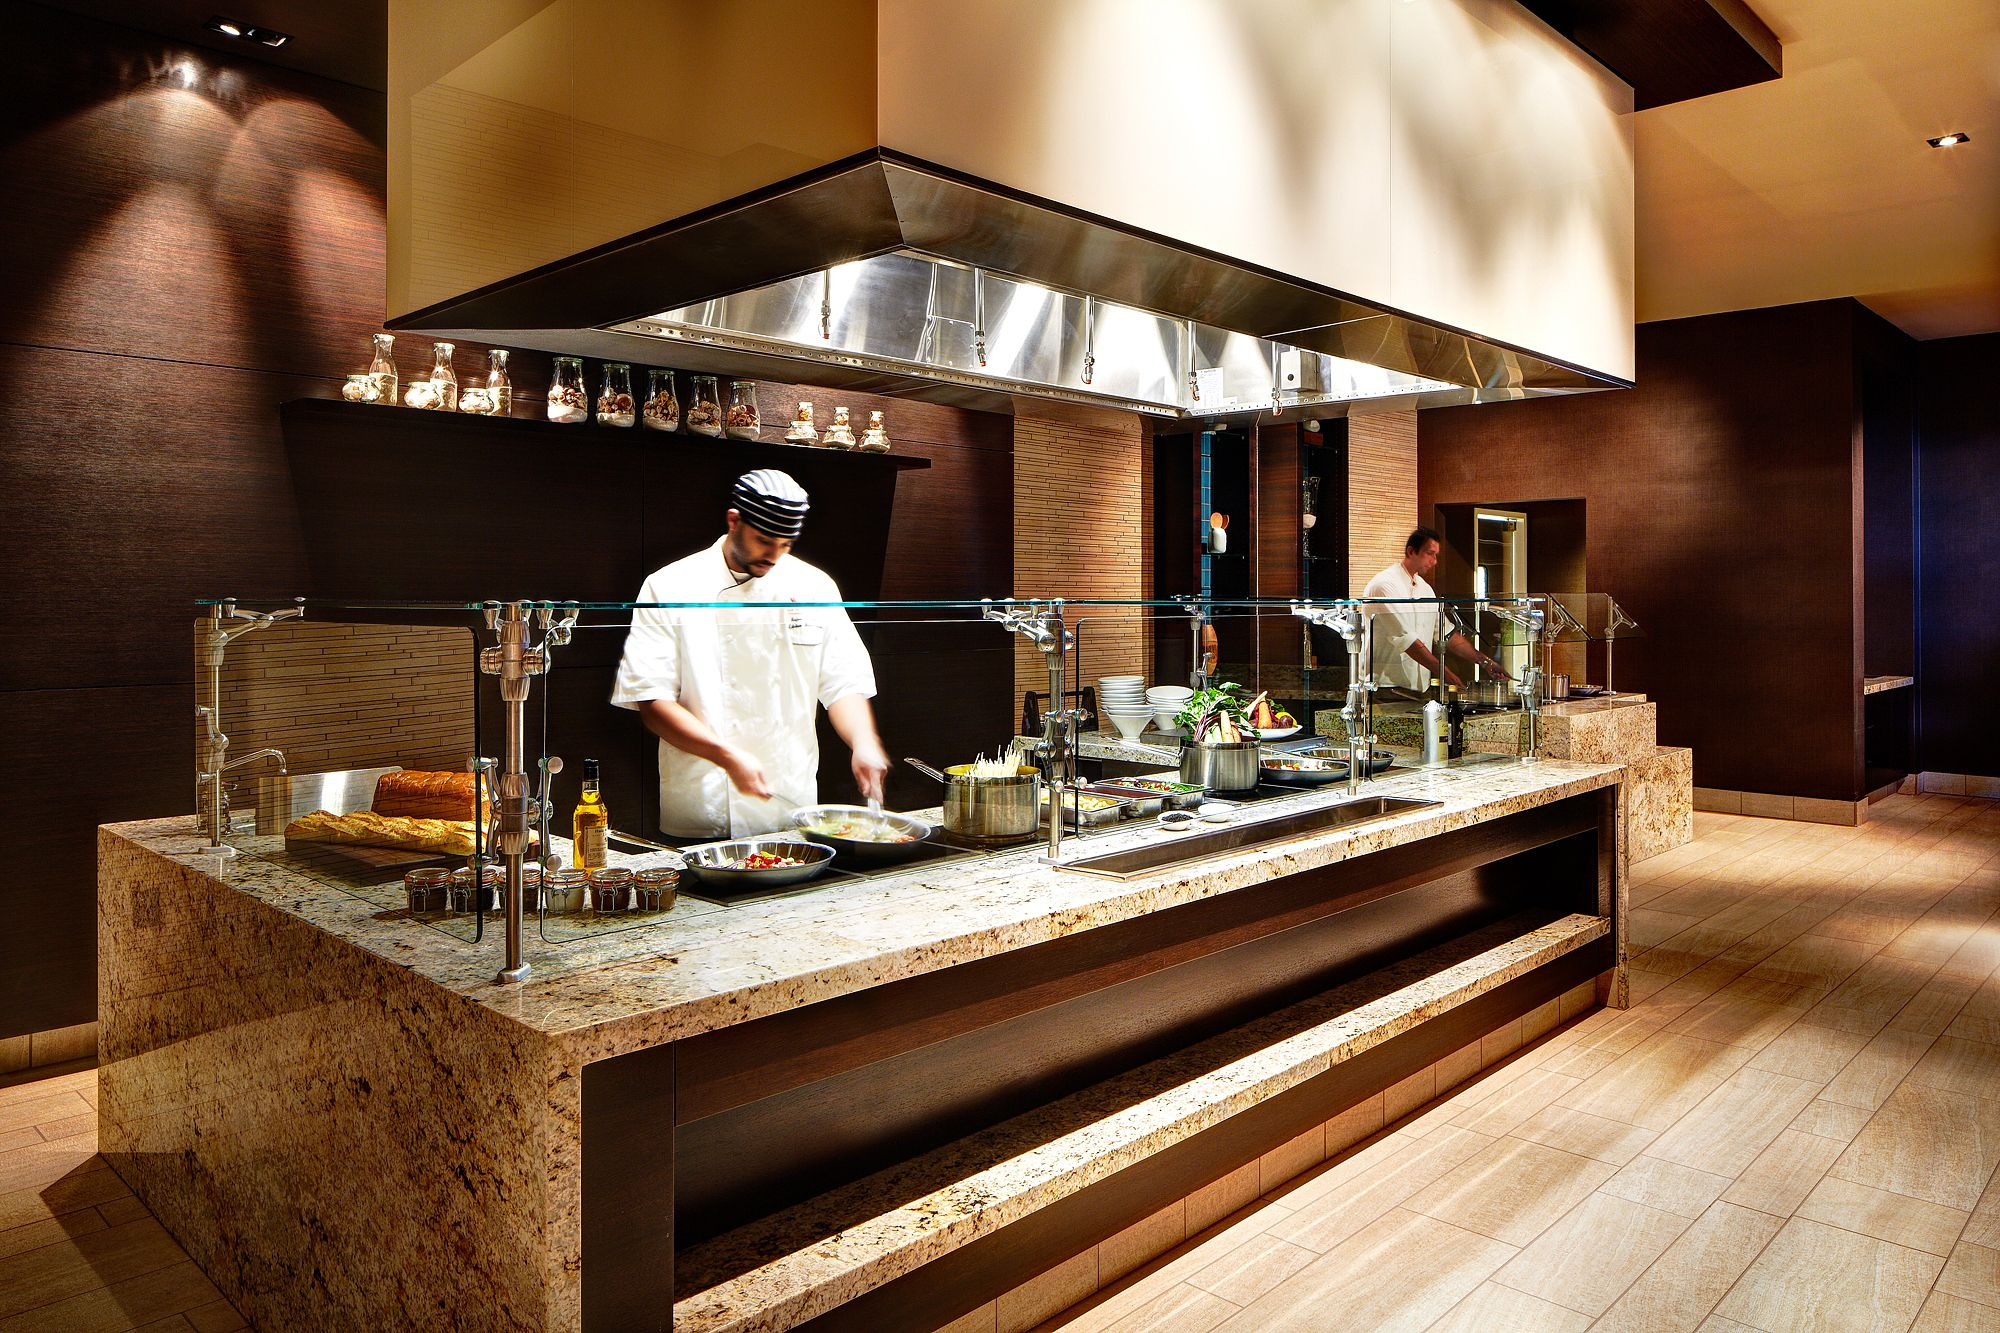 Buffet Cuisine Design Our Buffet Station Sandiego Dining Restaurant Hotel